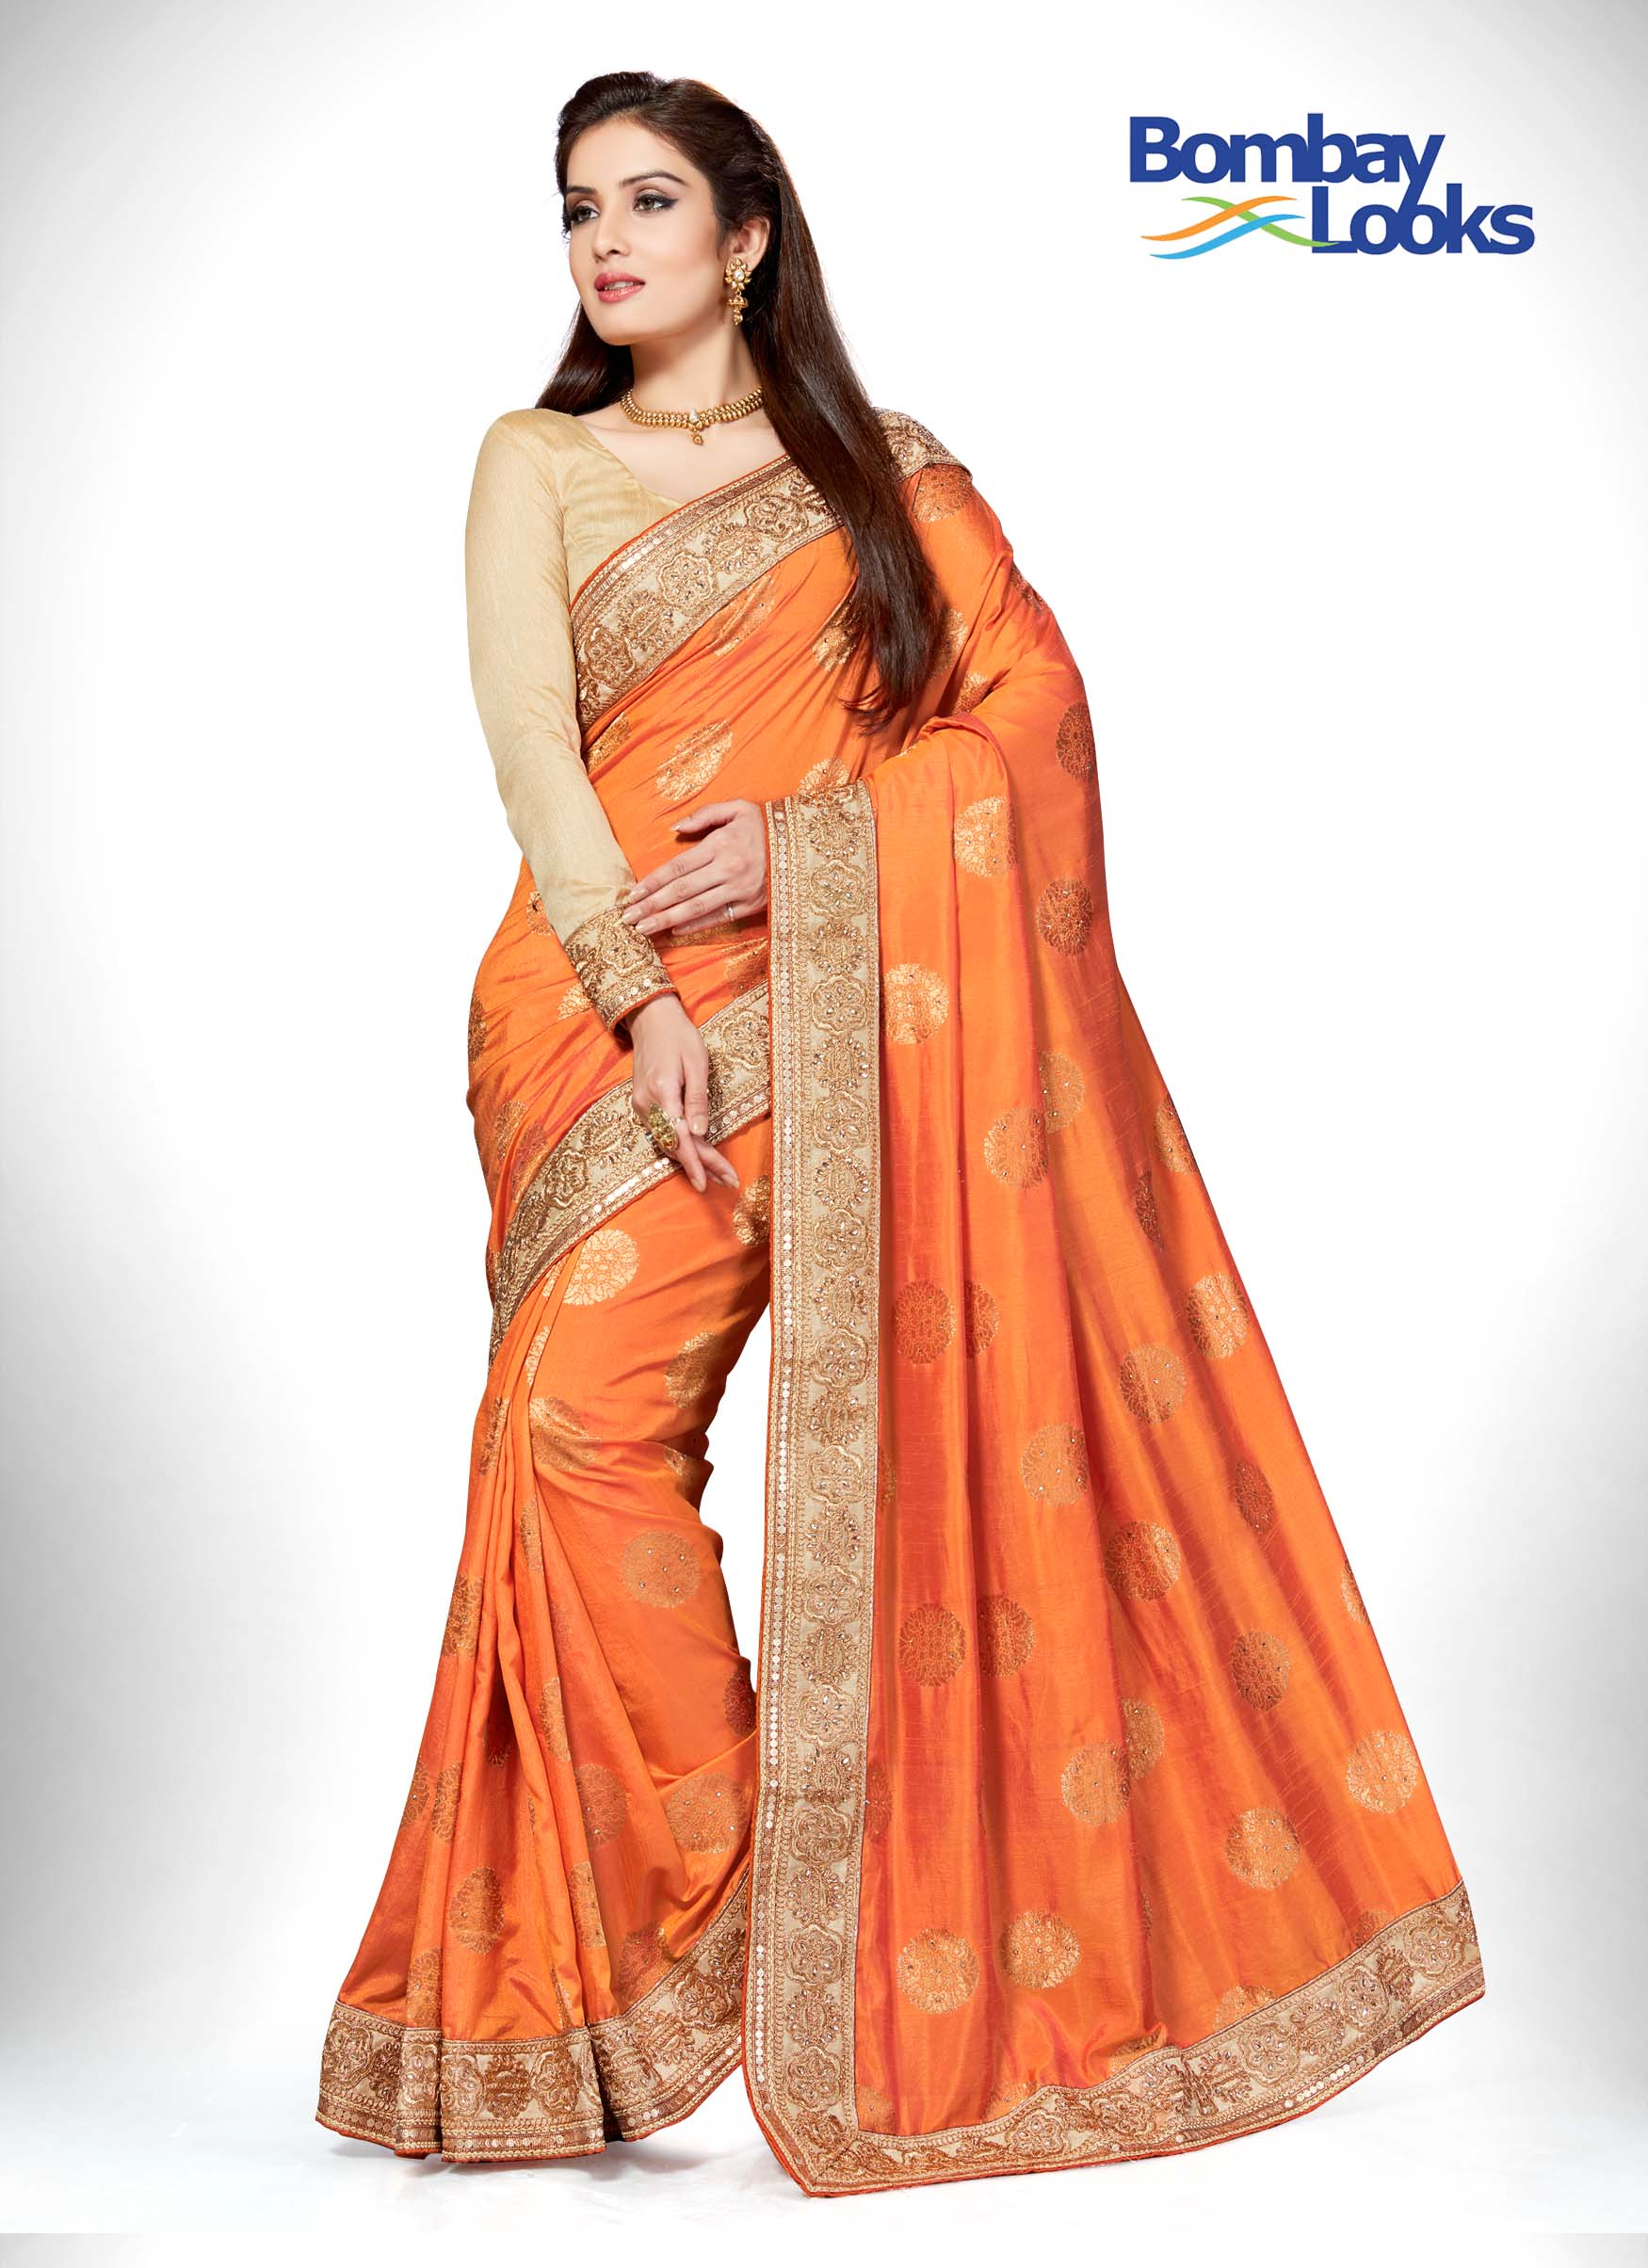 Orange banarasi butta saree with gold stone border